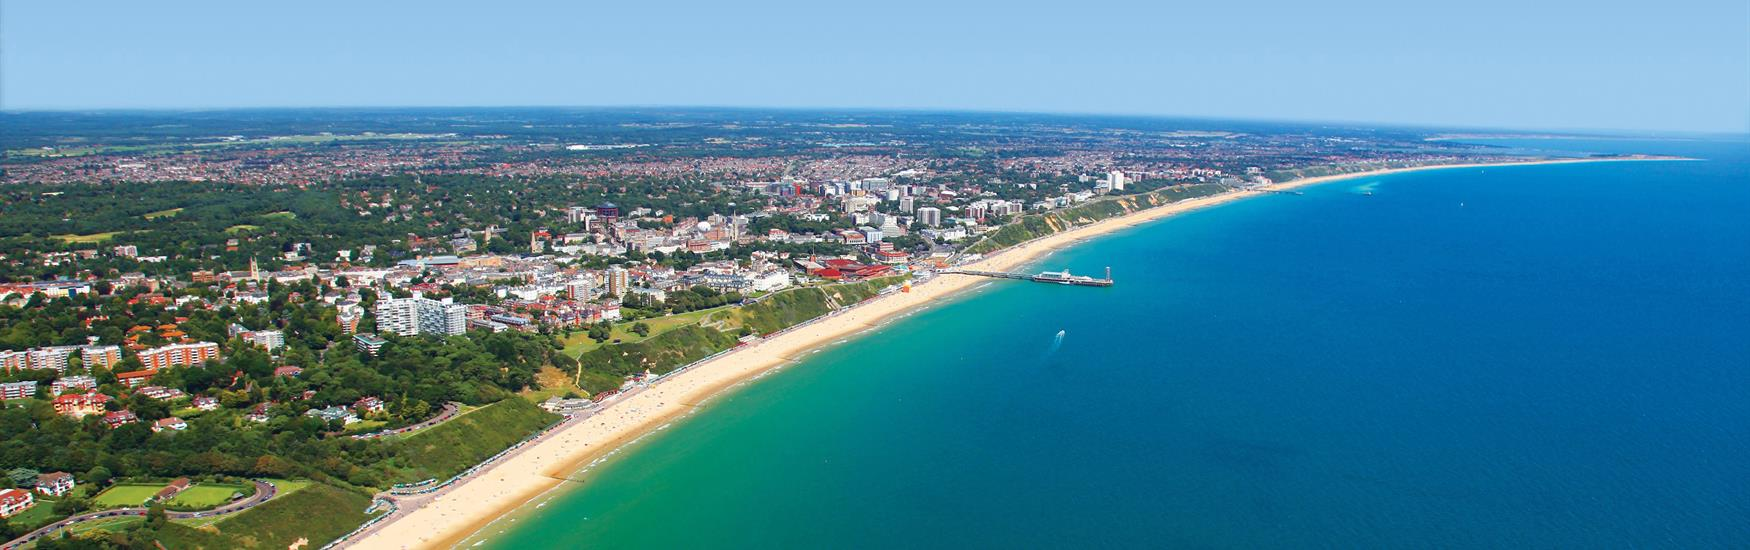 Sweeping shot of Bournemouth from the Air Turquoise Sea Bay